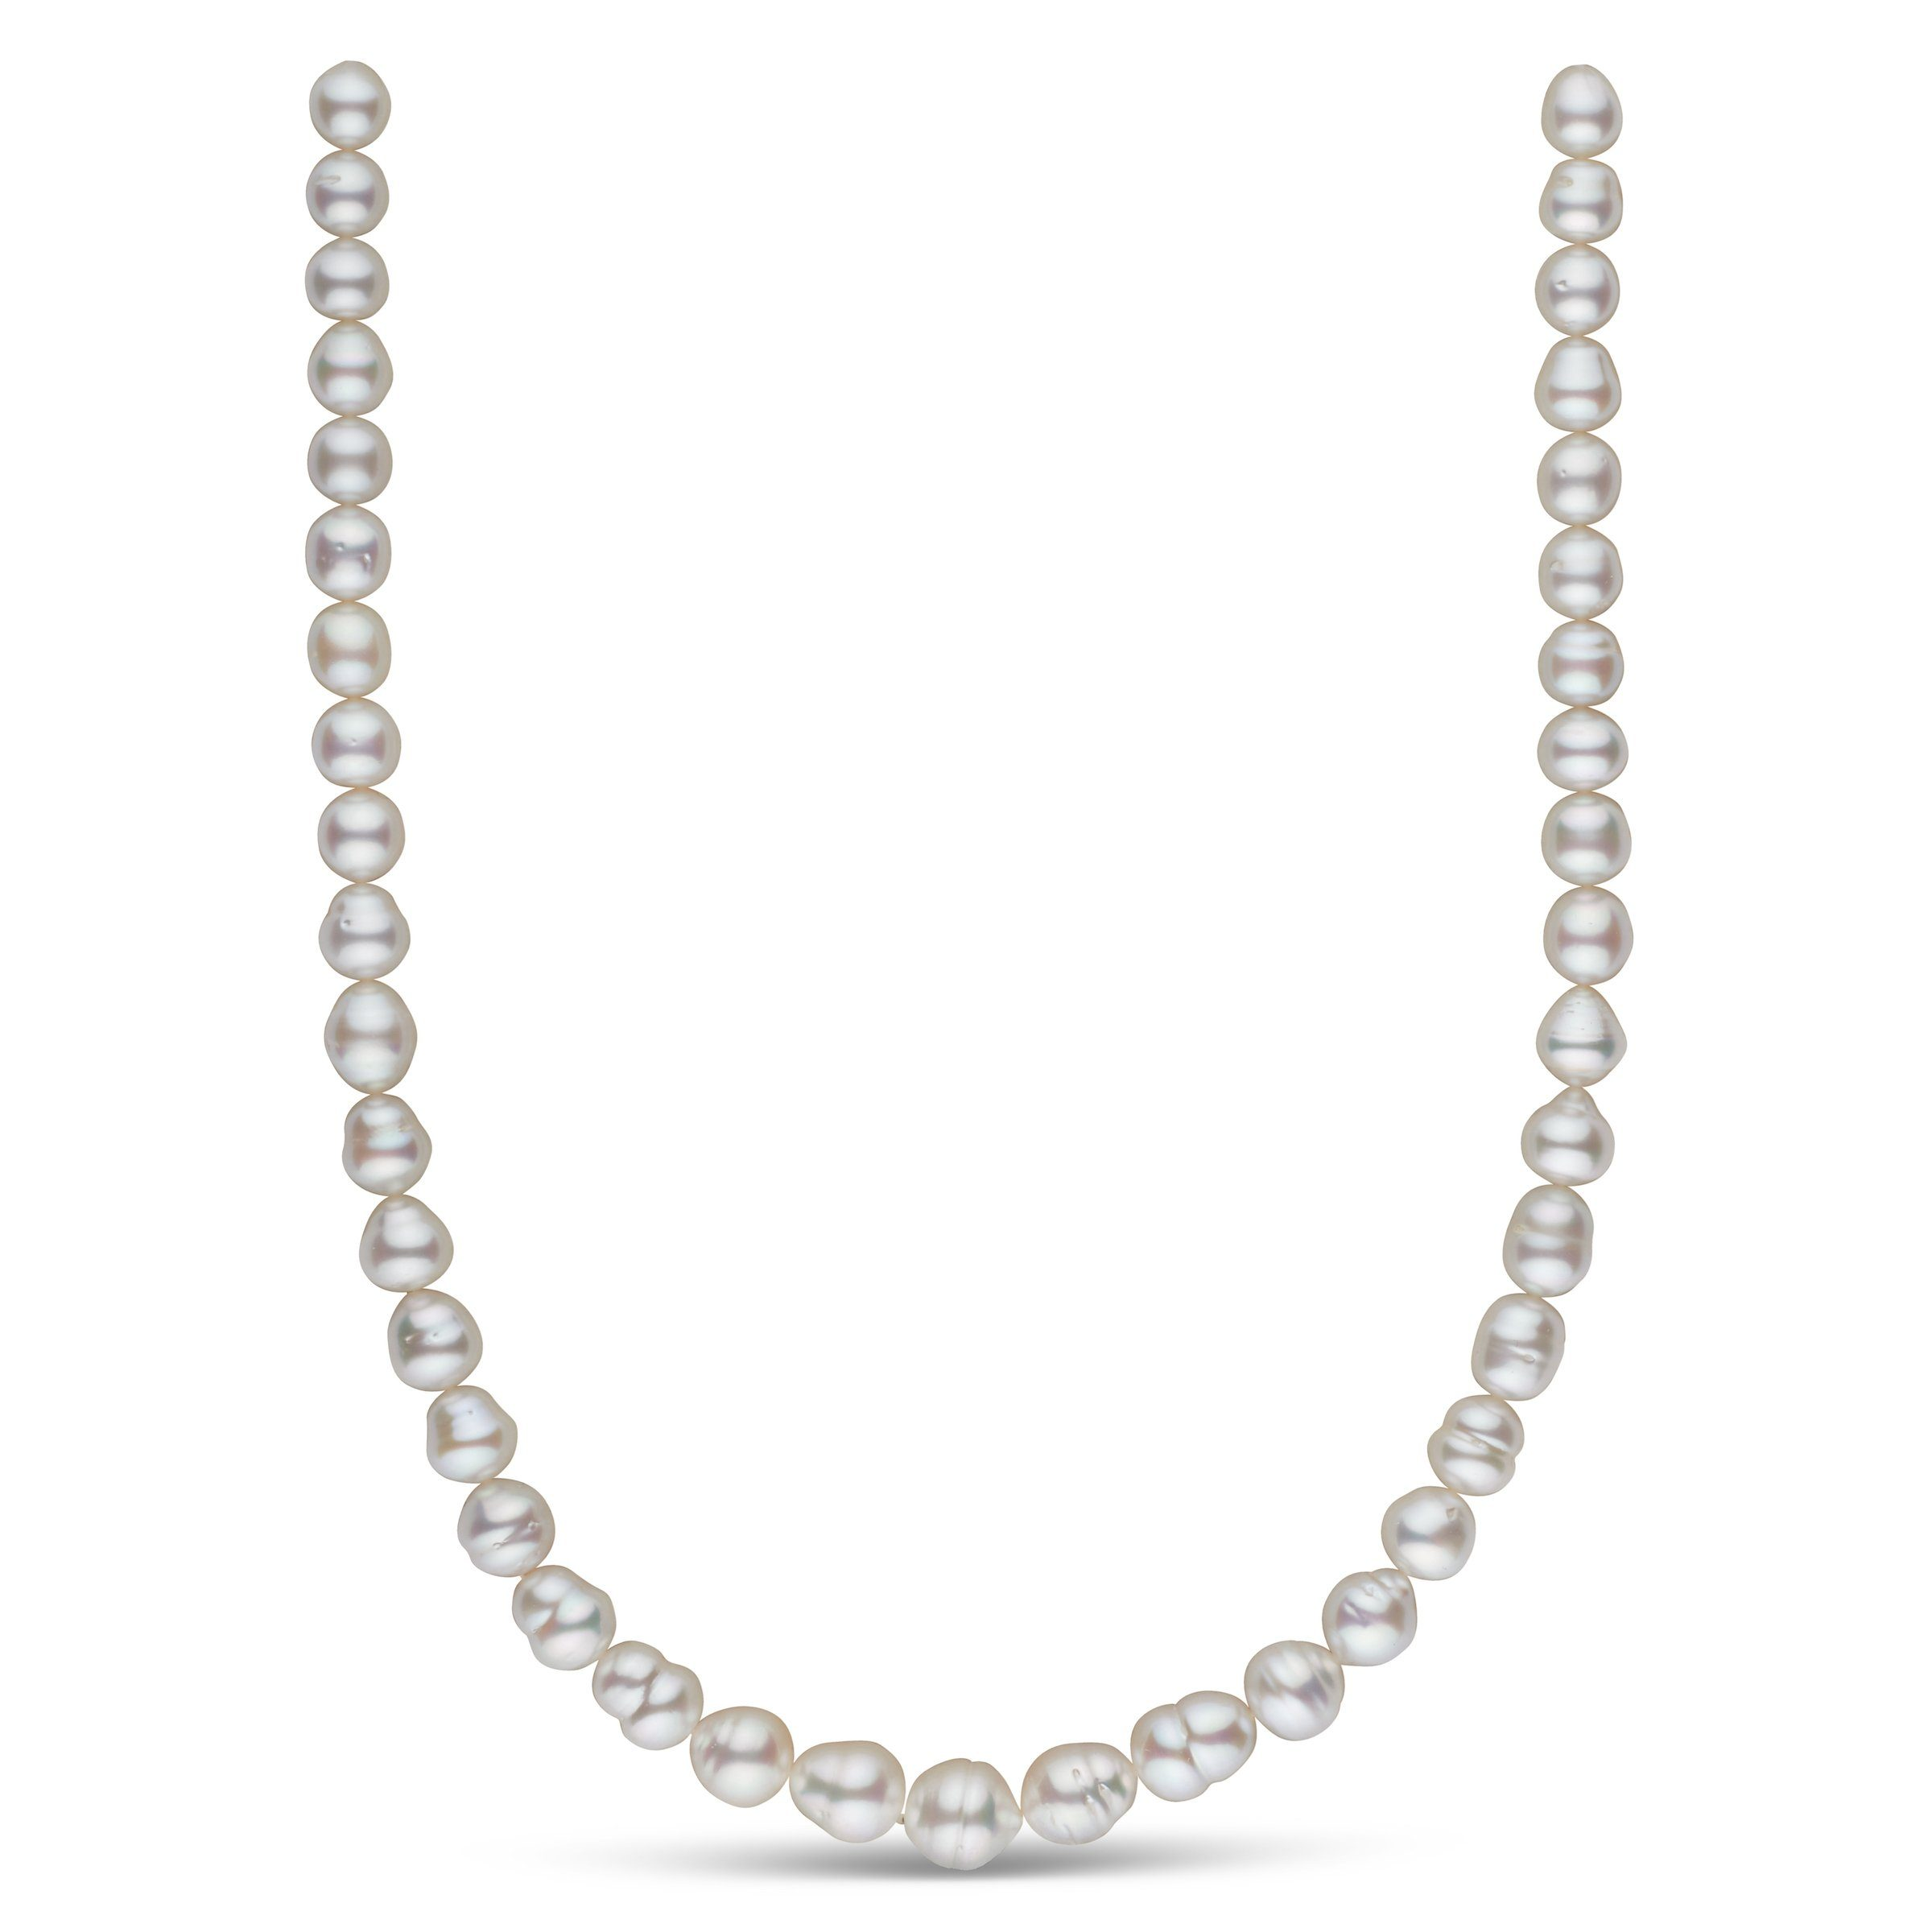 8.1-11.1 mm AA+/AAA White South Sea Baroque Necklace